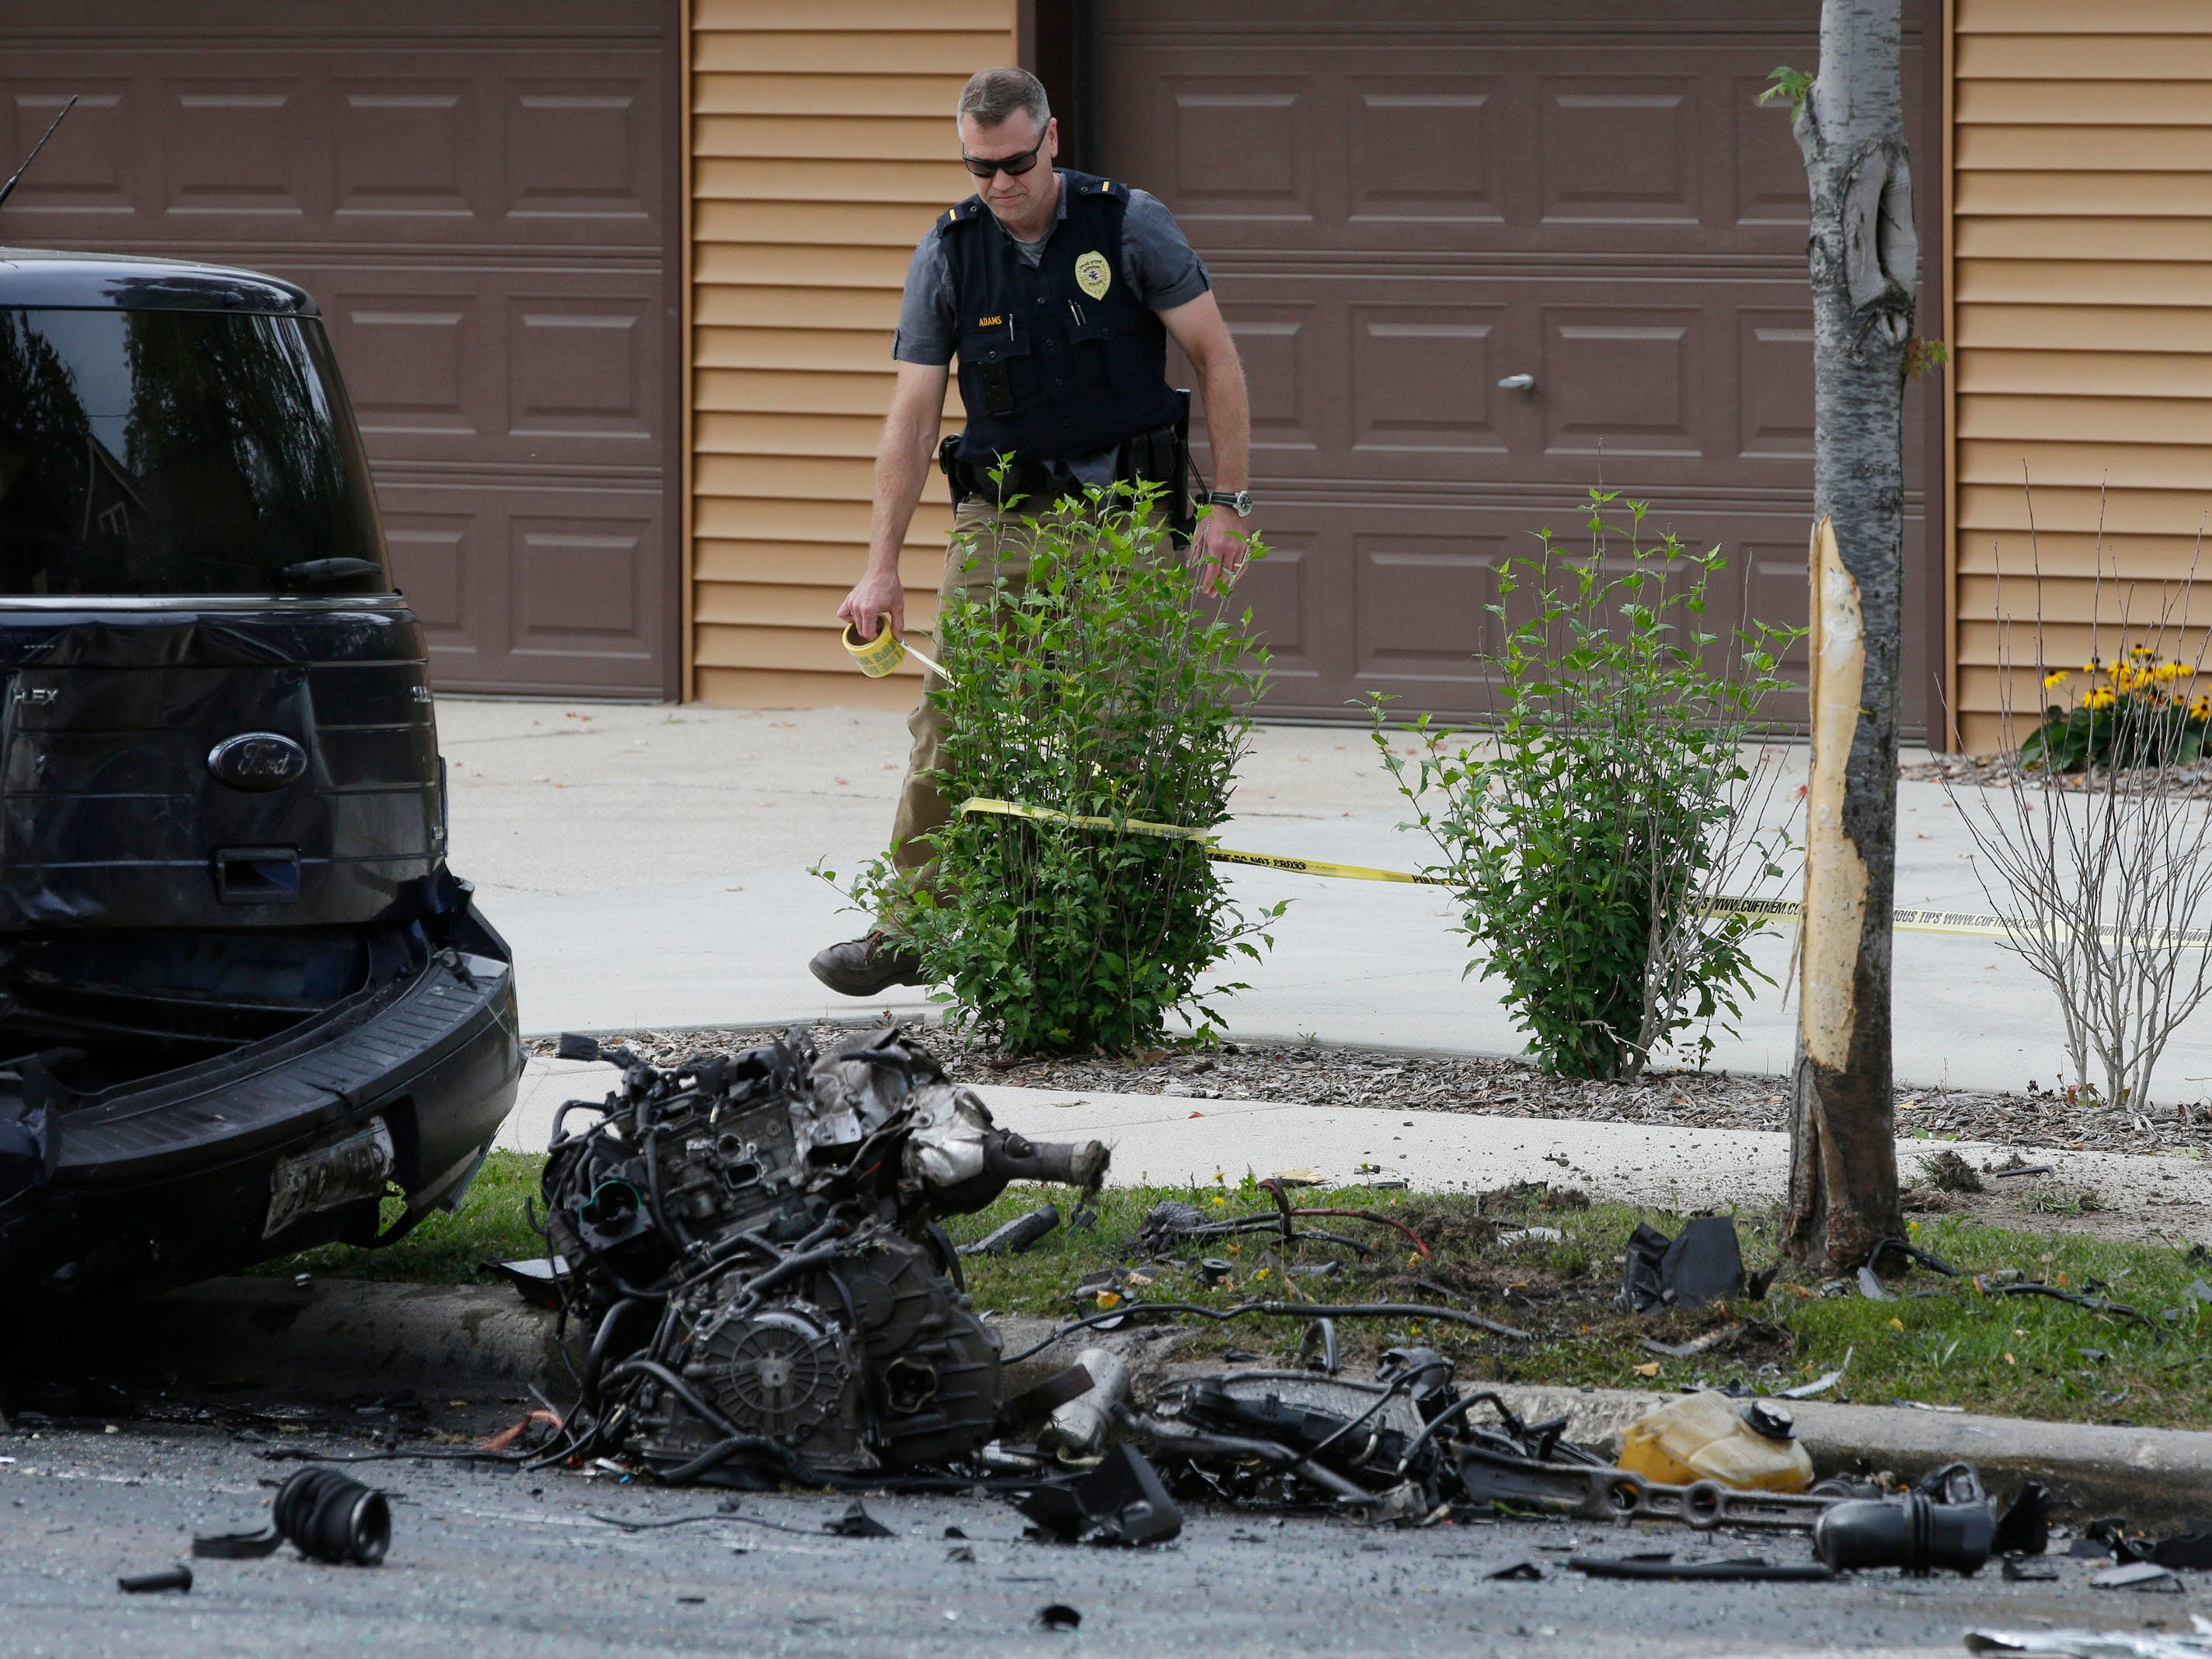 Sheboygan police wrap police tape at the scene of a 2-car crash on Pennsylvania Avenue between 14th and 15th streets, Tuesday, September 18, 2018, in Sheboygan, Wis. A third parked car was also struck. Two people died as a result of the crash.